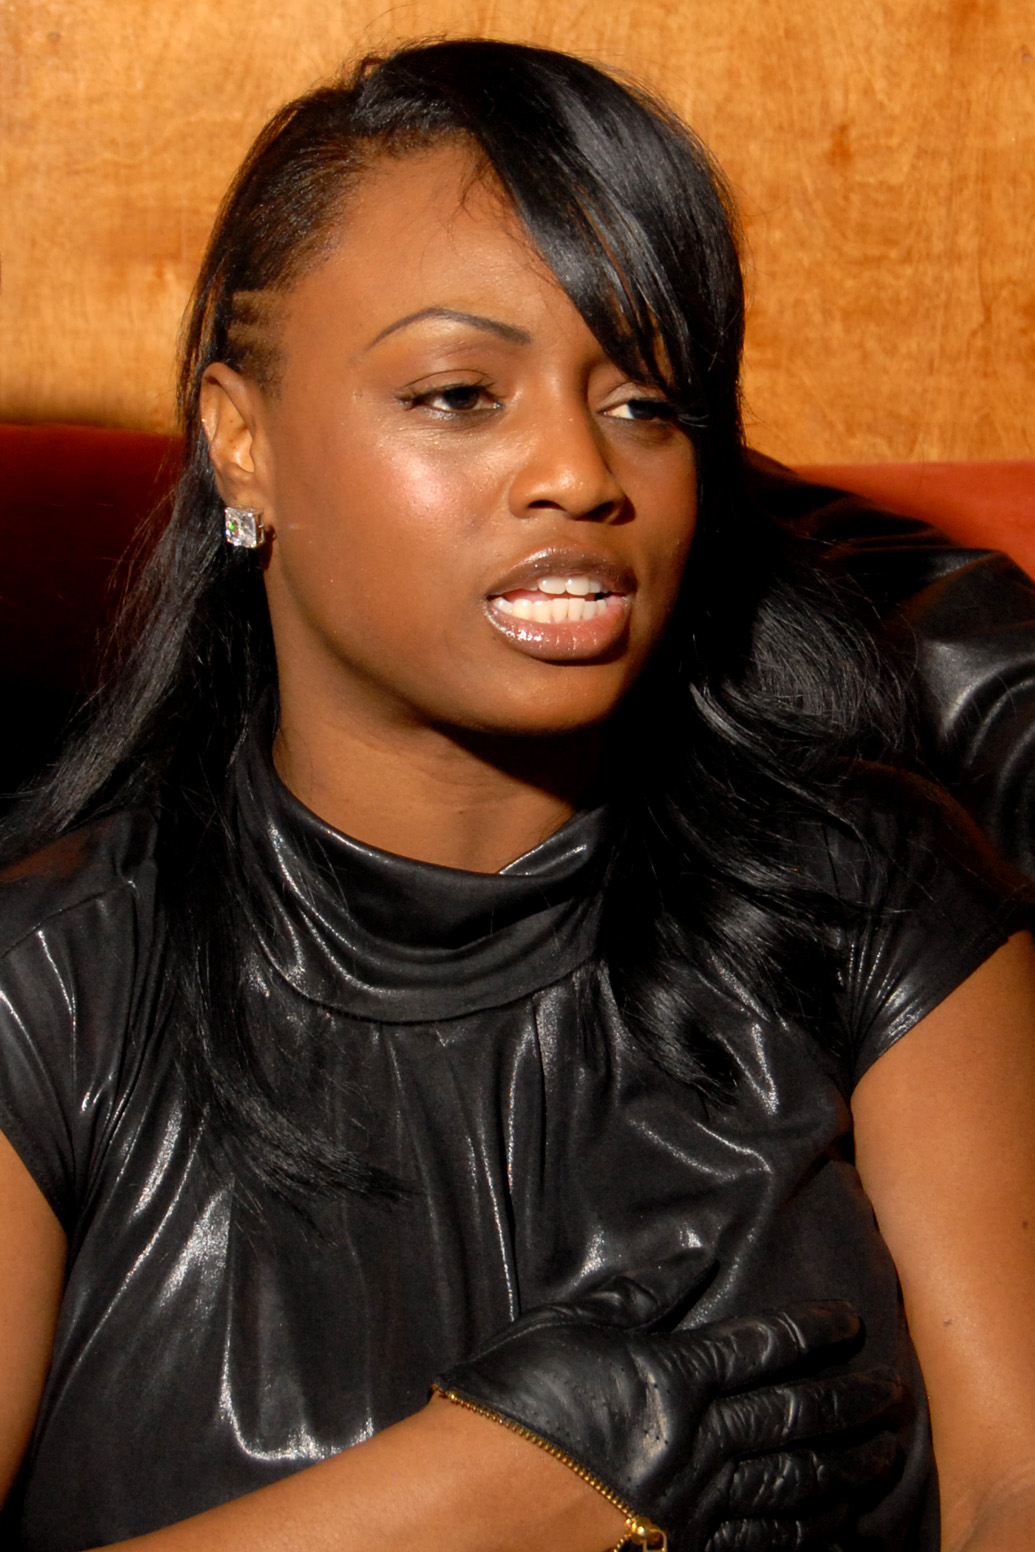 jada fire - wikipedia